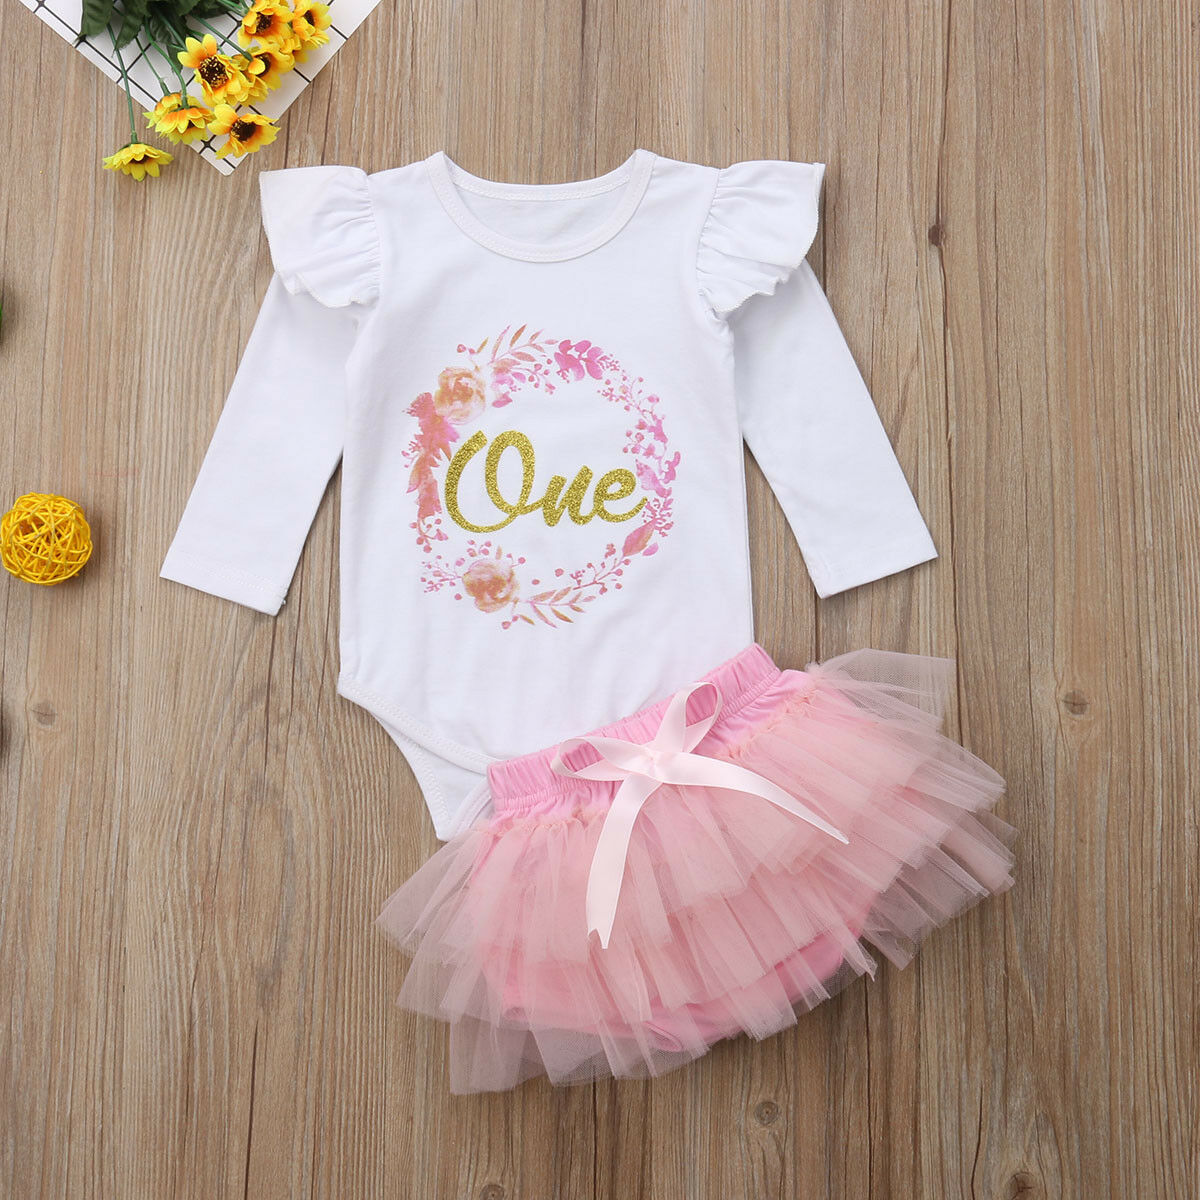 Toddler Baby Girls 1st Birthday Outfits Romper Tutu Skirt Party Dress Costume